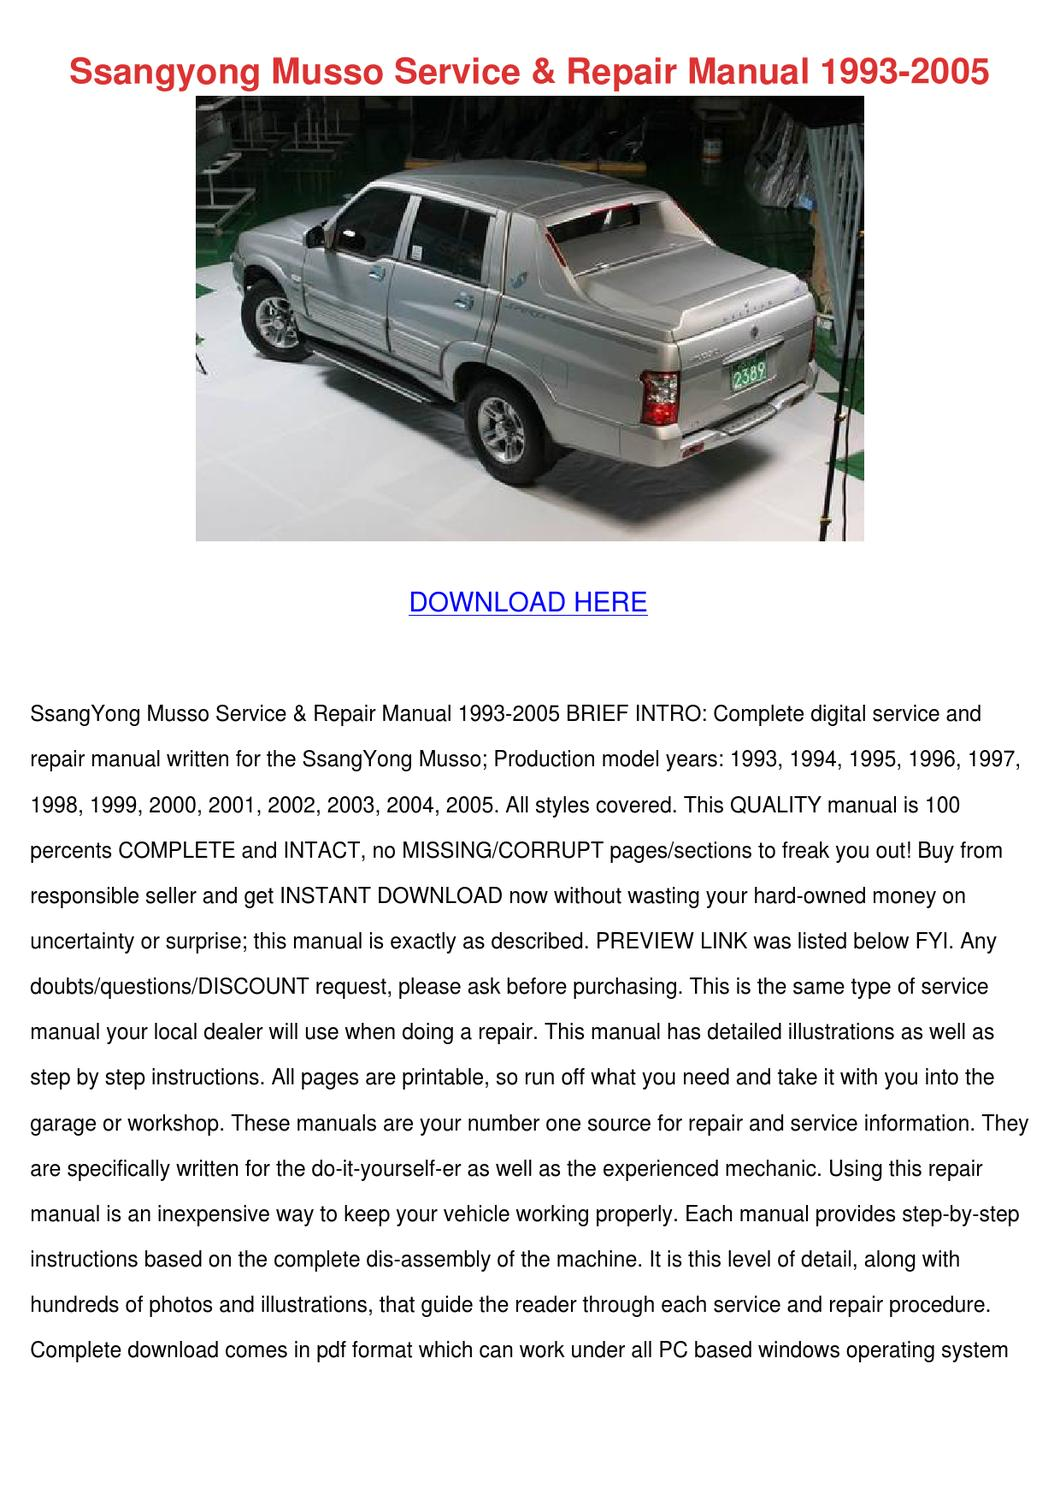 Ssangyong musso service repair manual 1993 20 by suzanna onishea issuu solutioingenieria Images